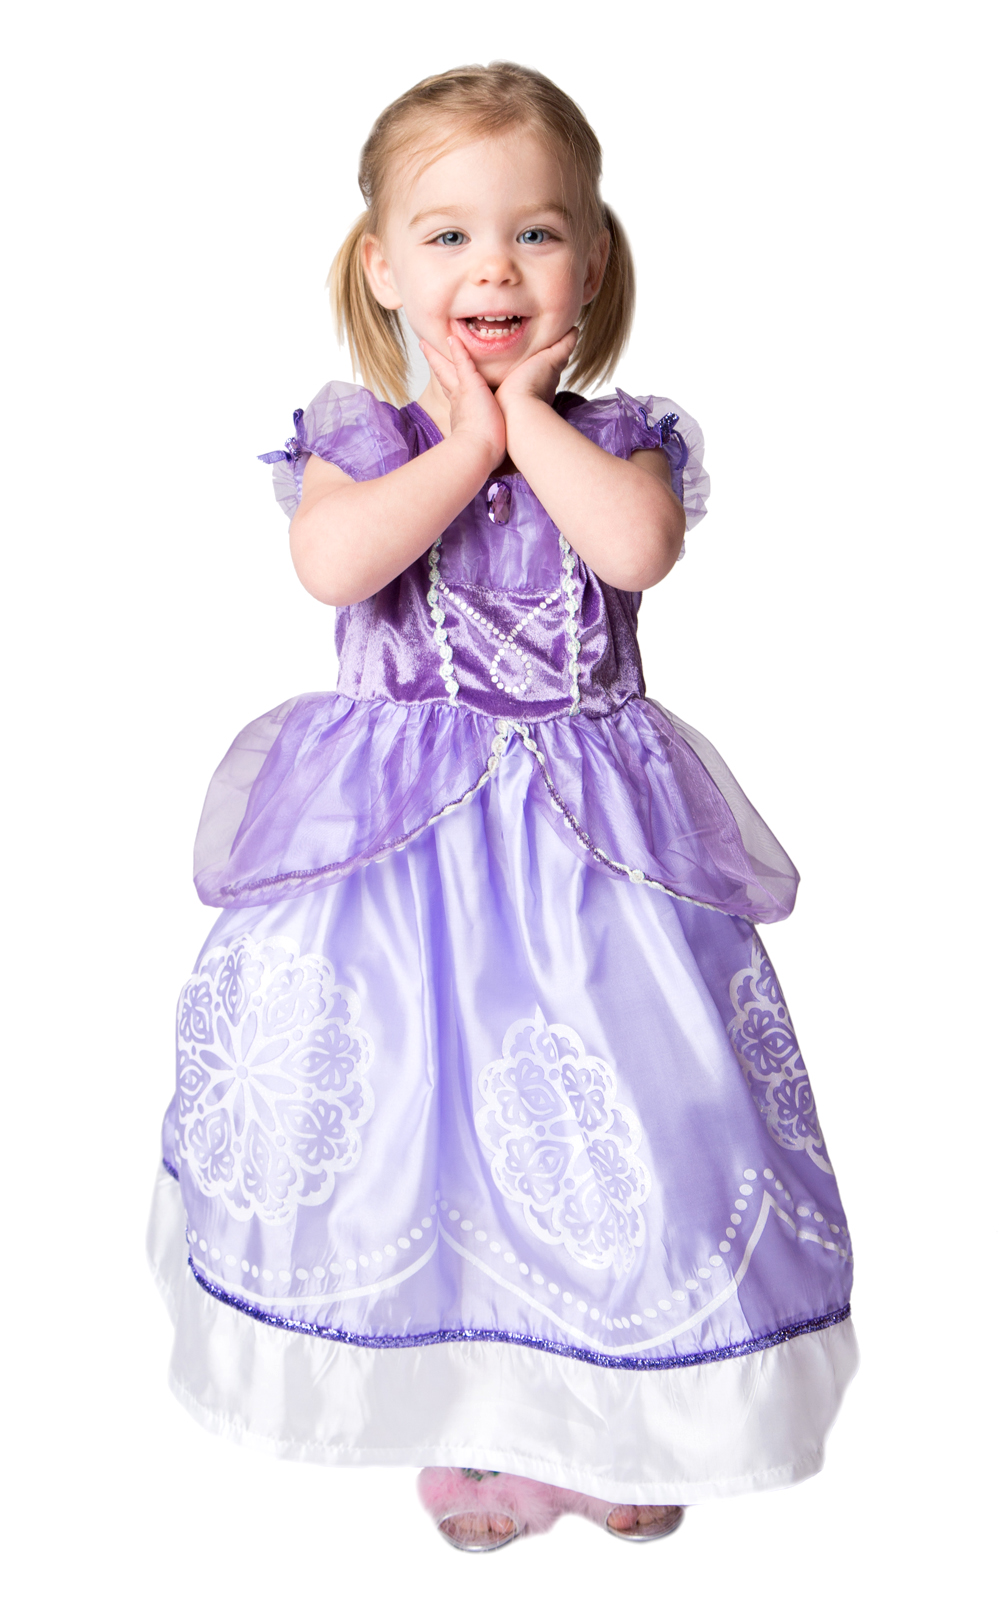 princess dresses for toddlers, OFF 4%,Buy!